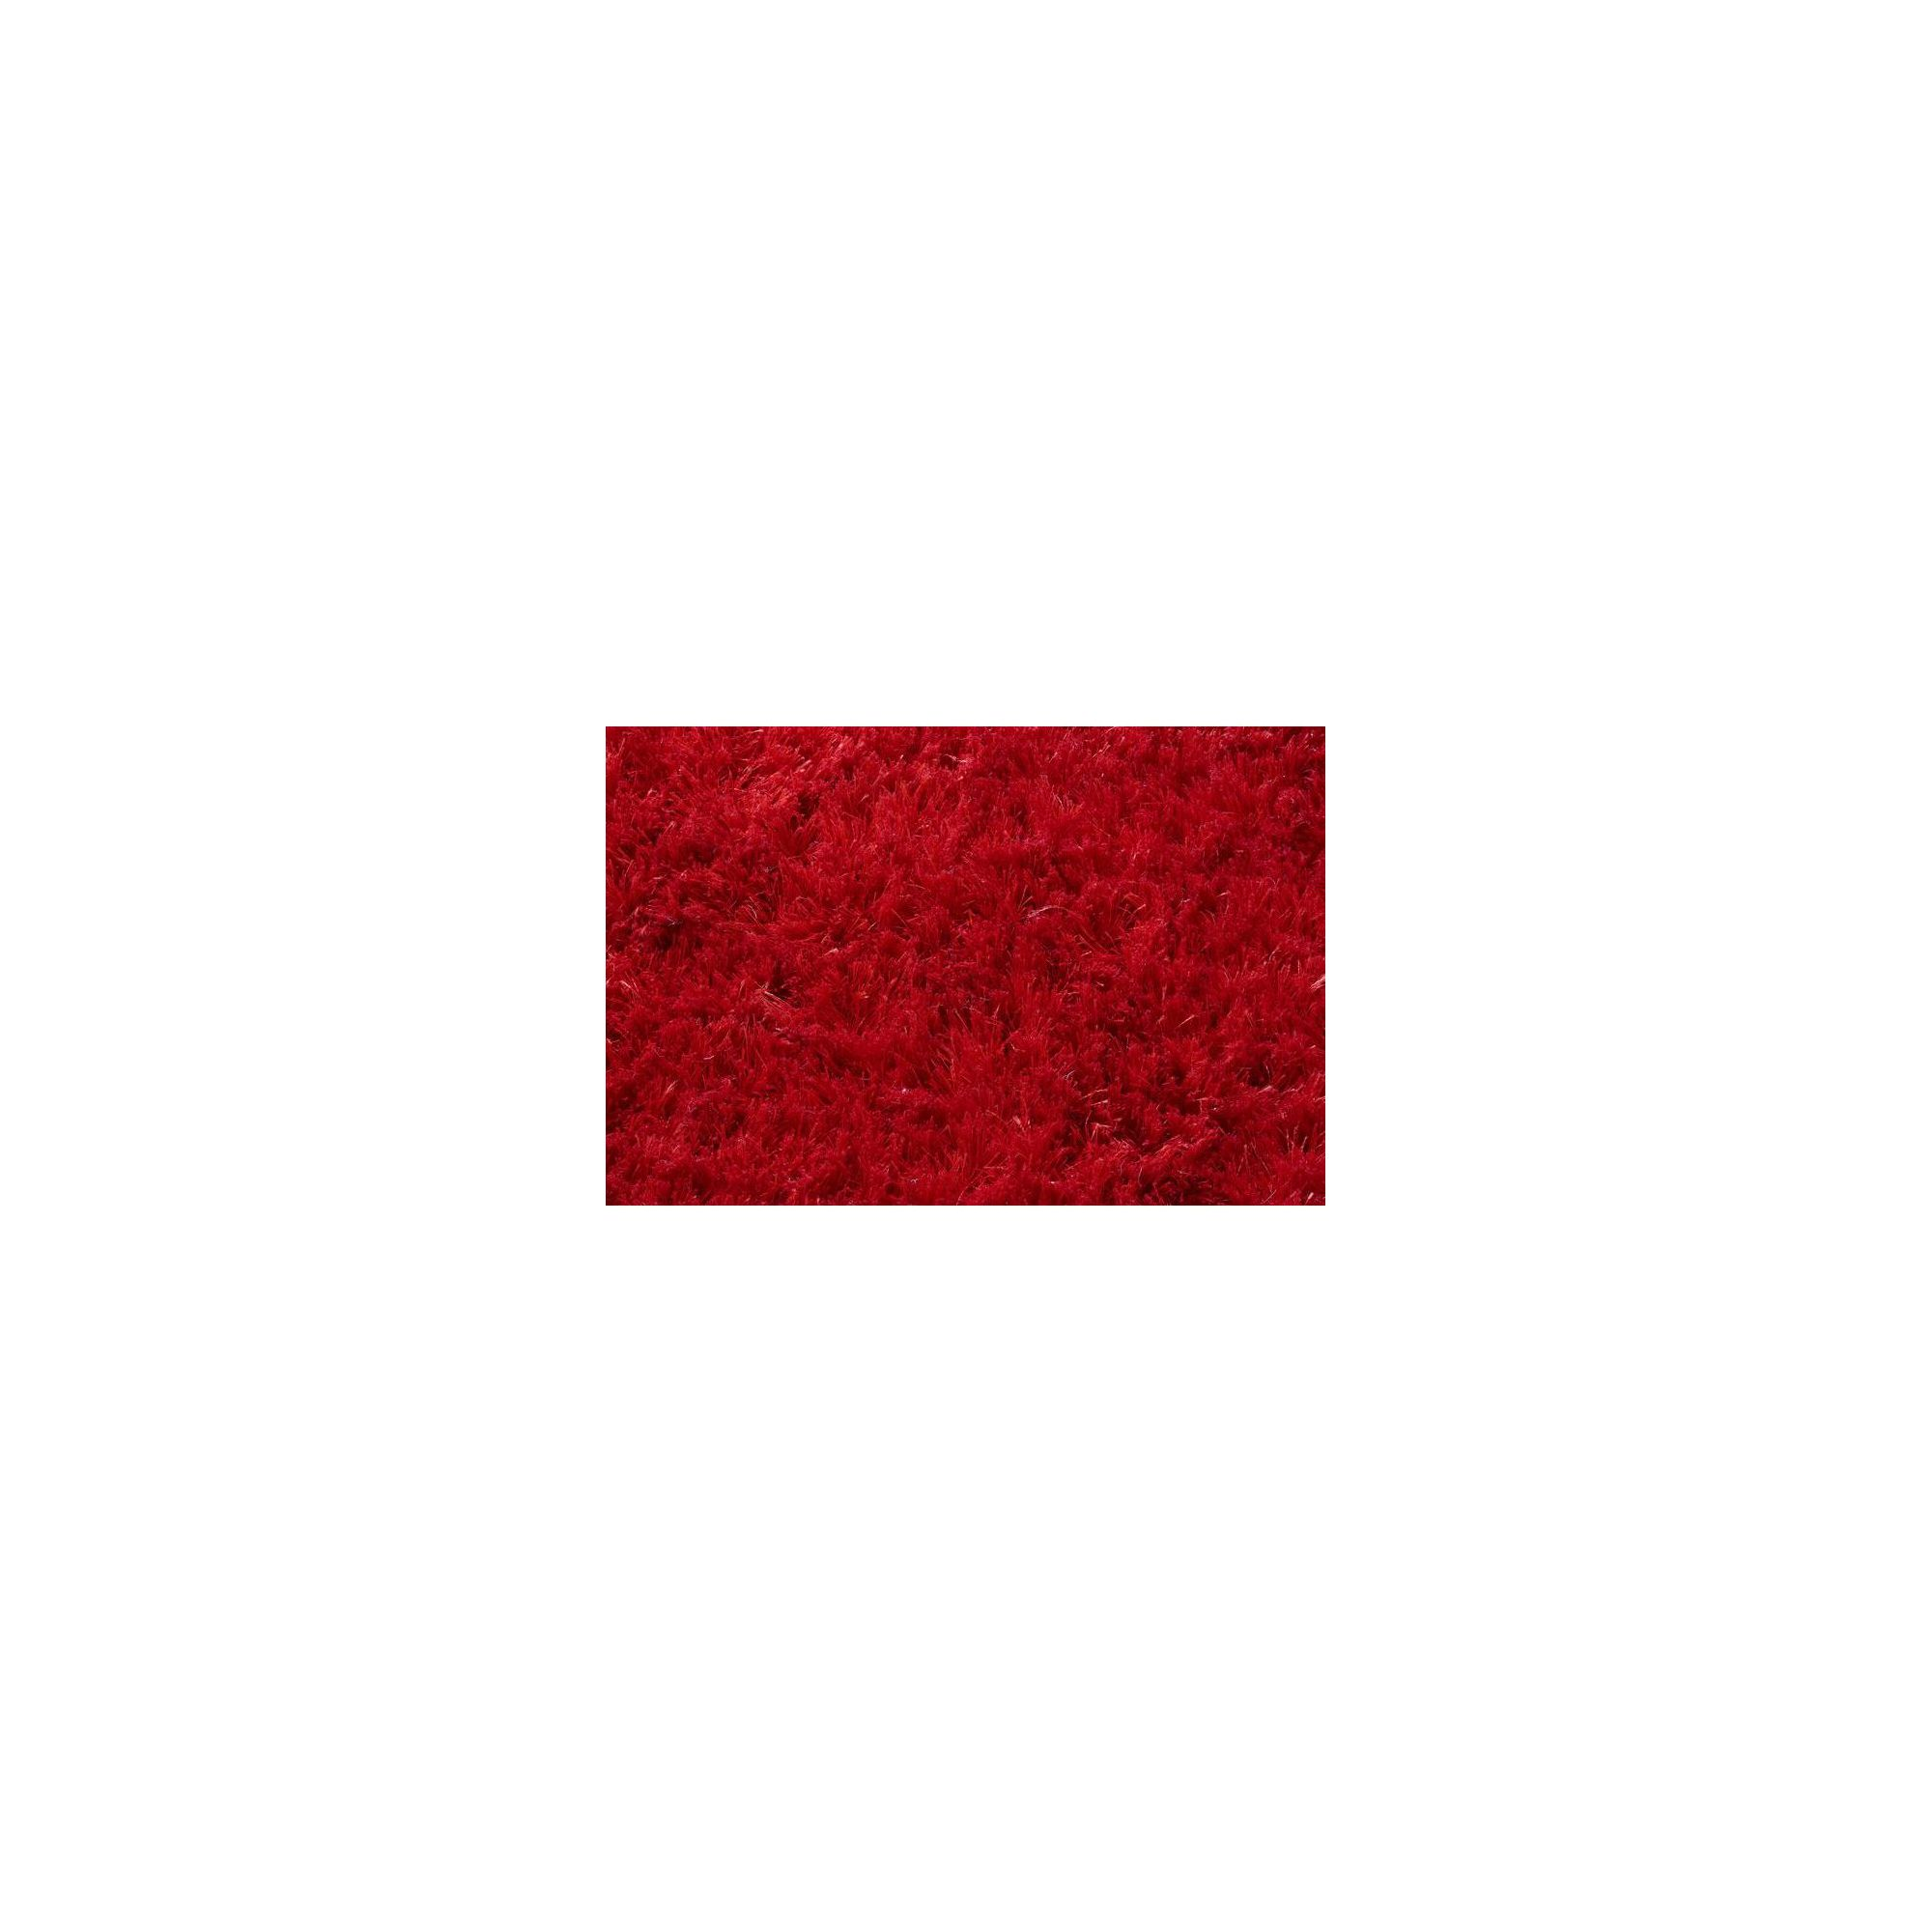 Linie Design Mantova Red Shag Rug - 300cm x 200cm at Tesco Direct